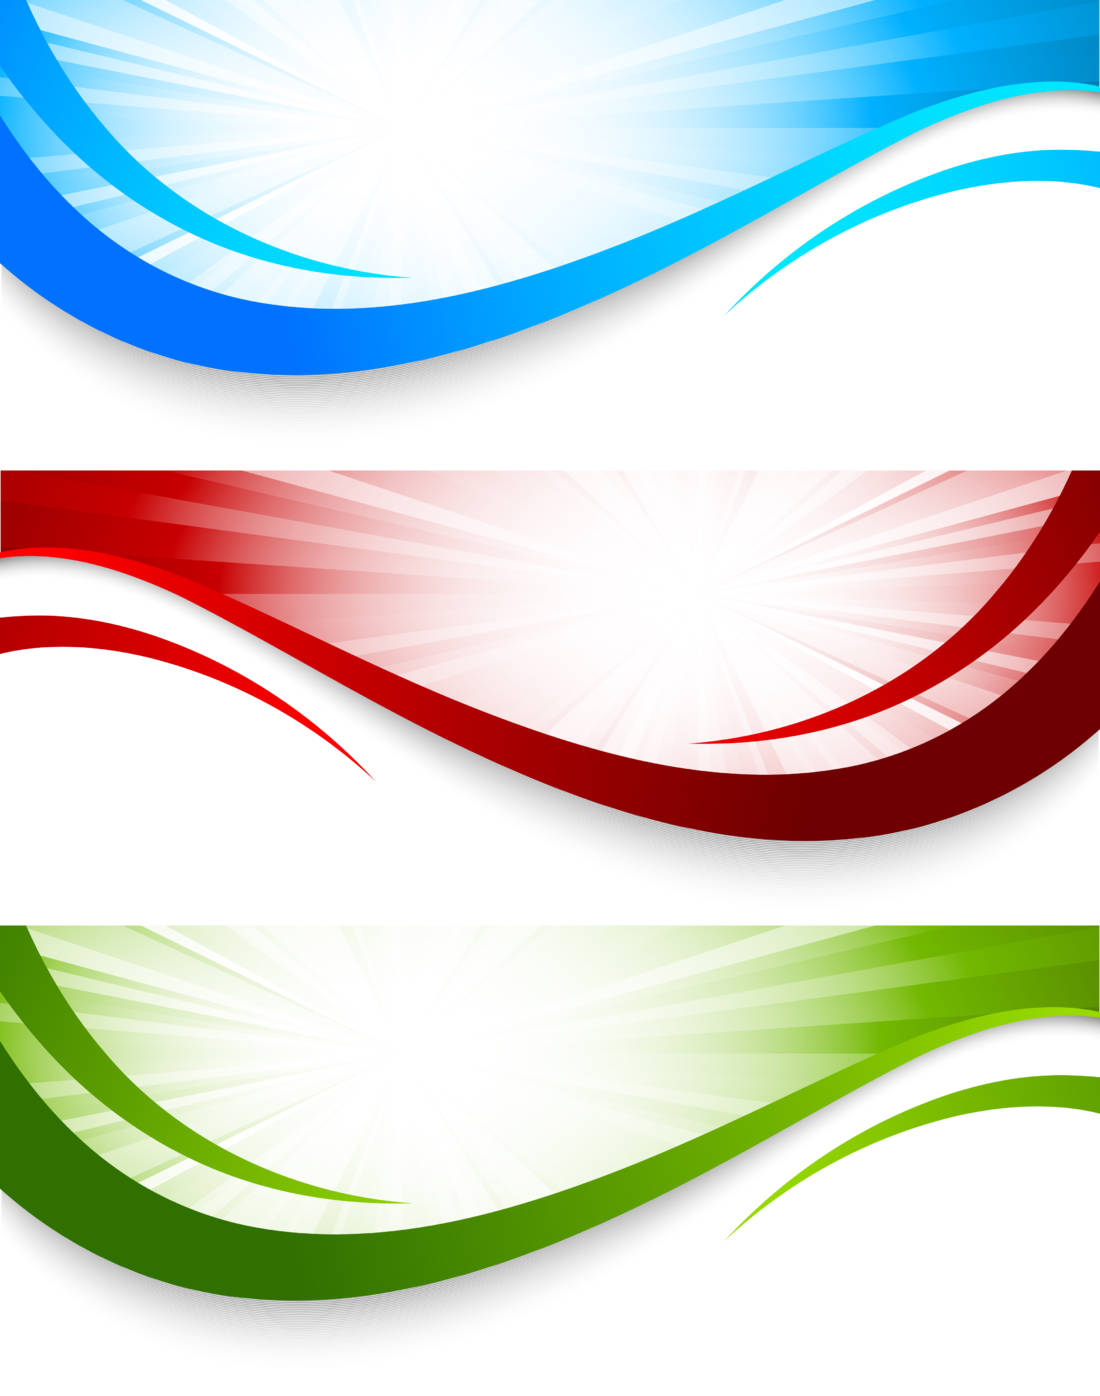 Awesome free vector banner images